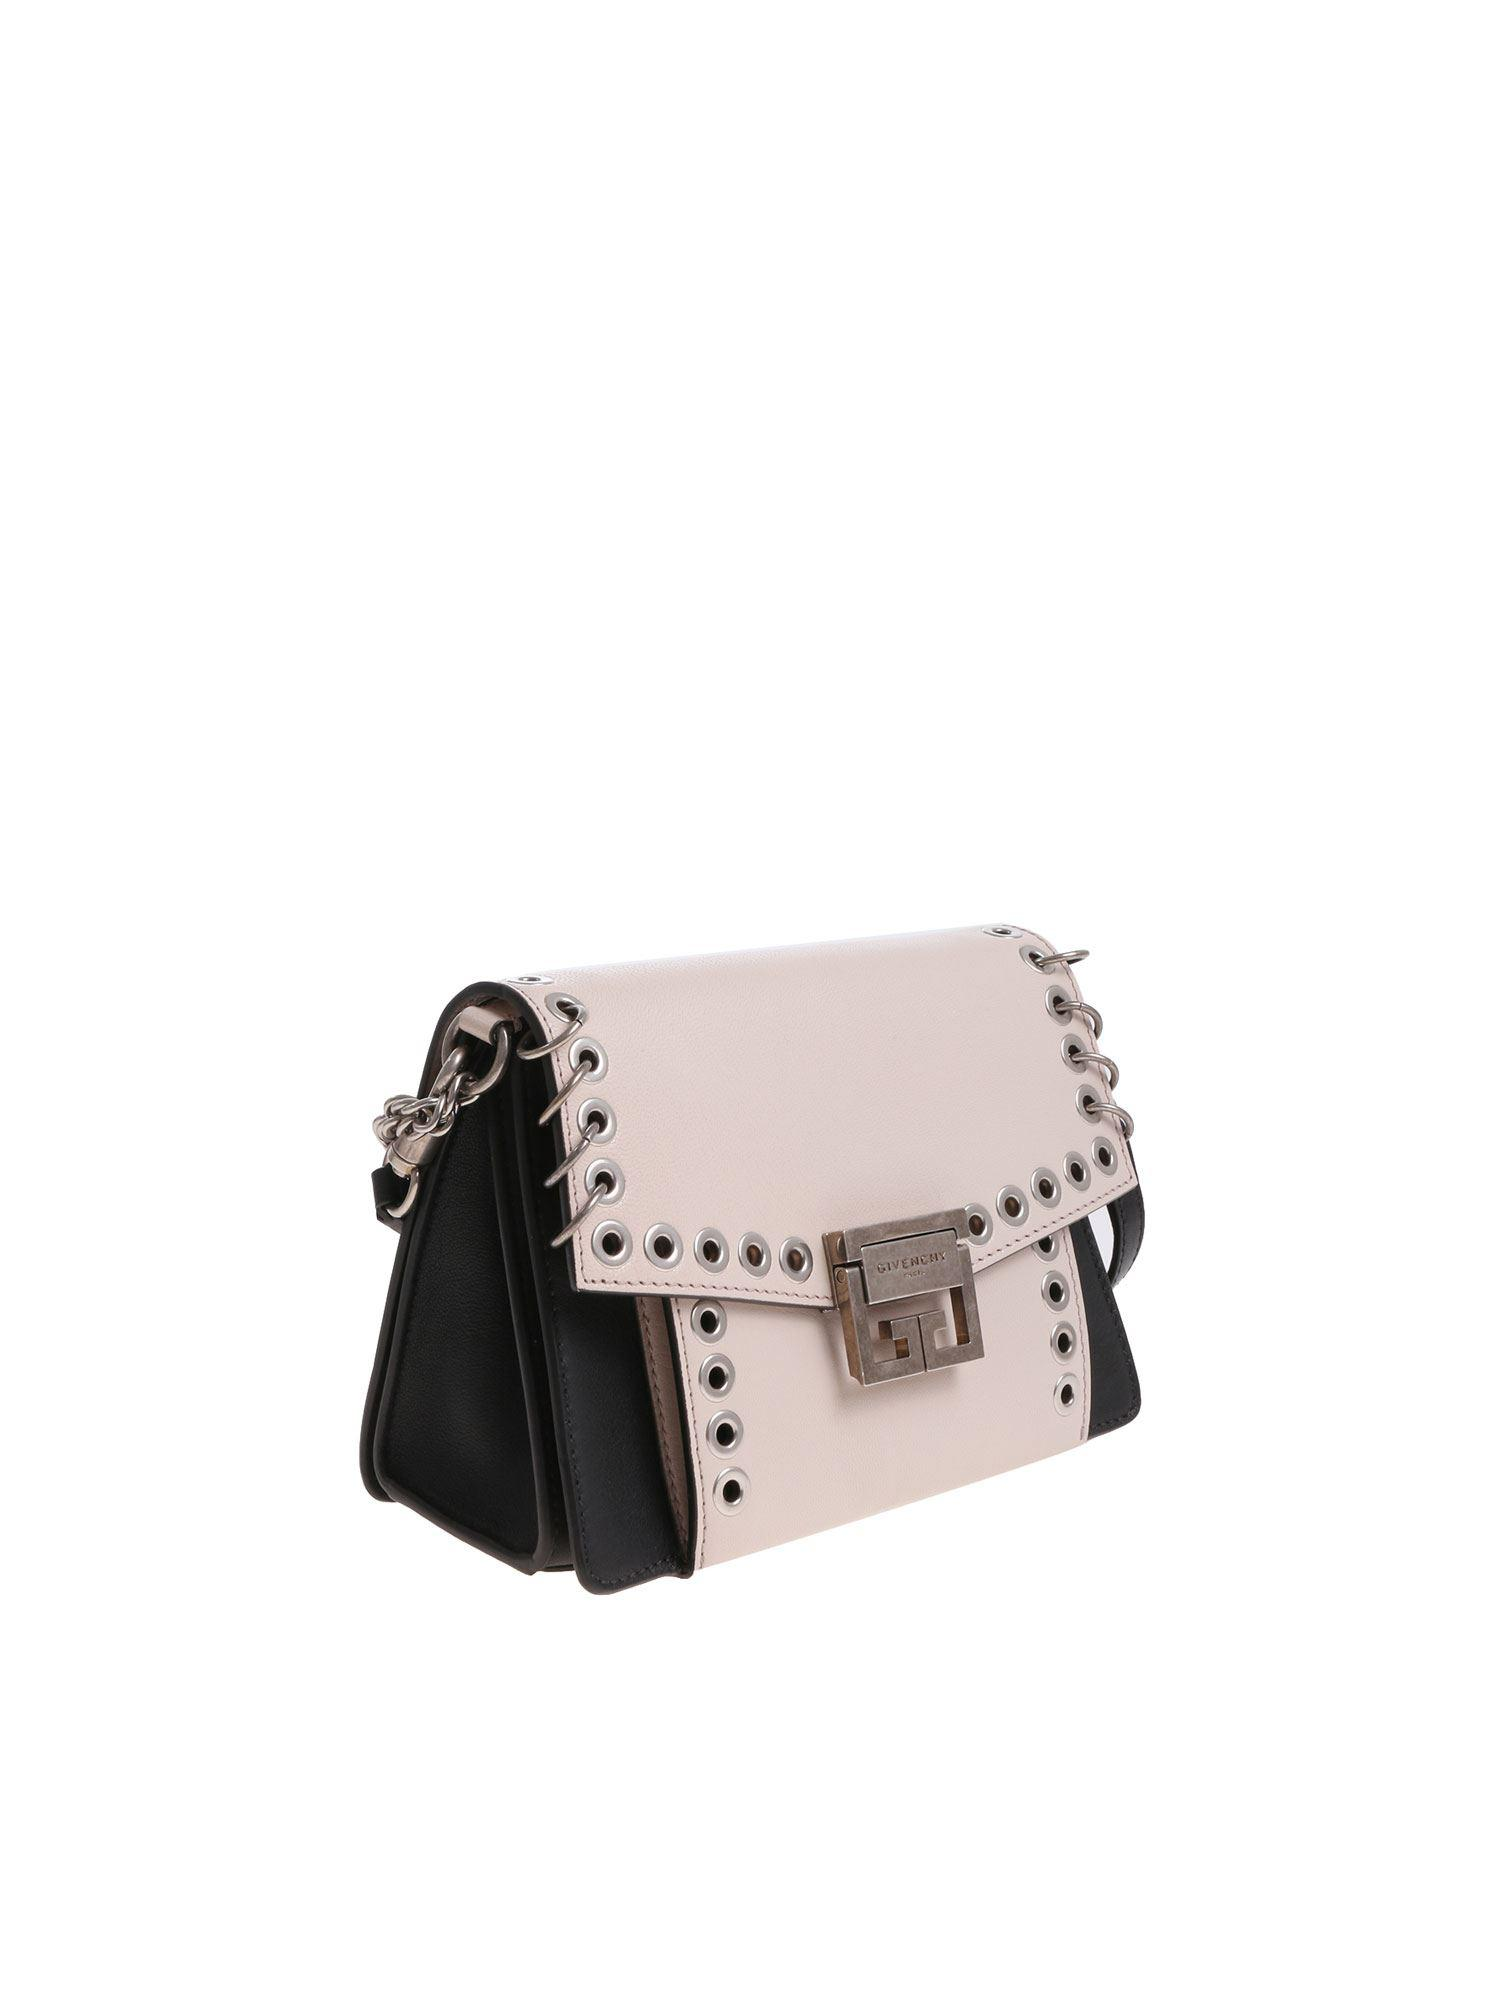 9e39bec531a5 Lyst - Givenchy Two-colored Bag With Metal Details - Save ...